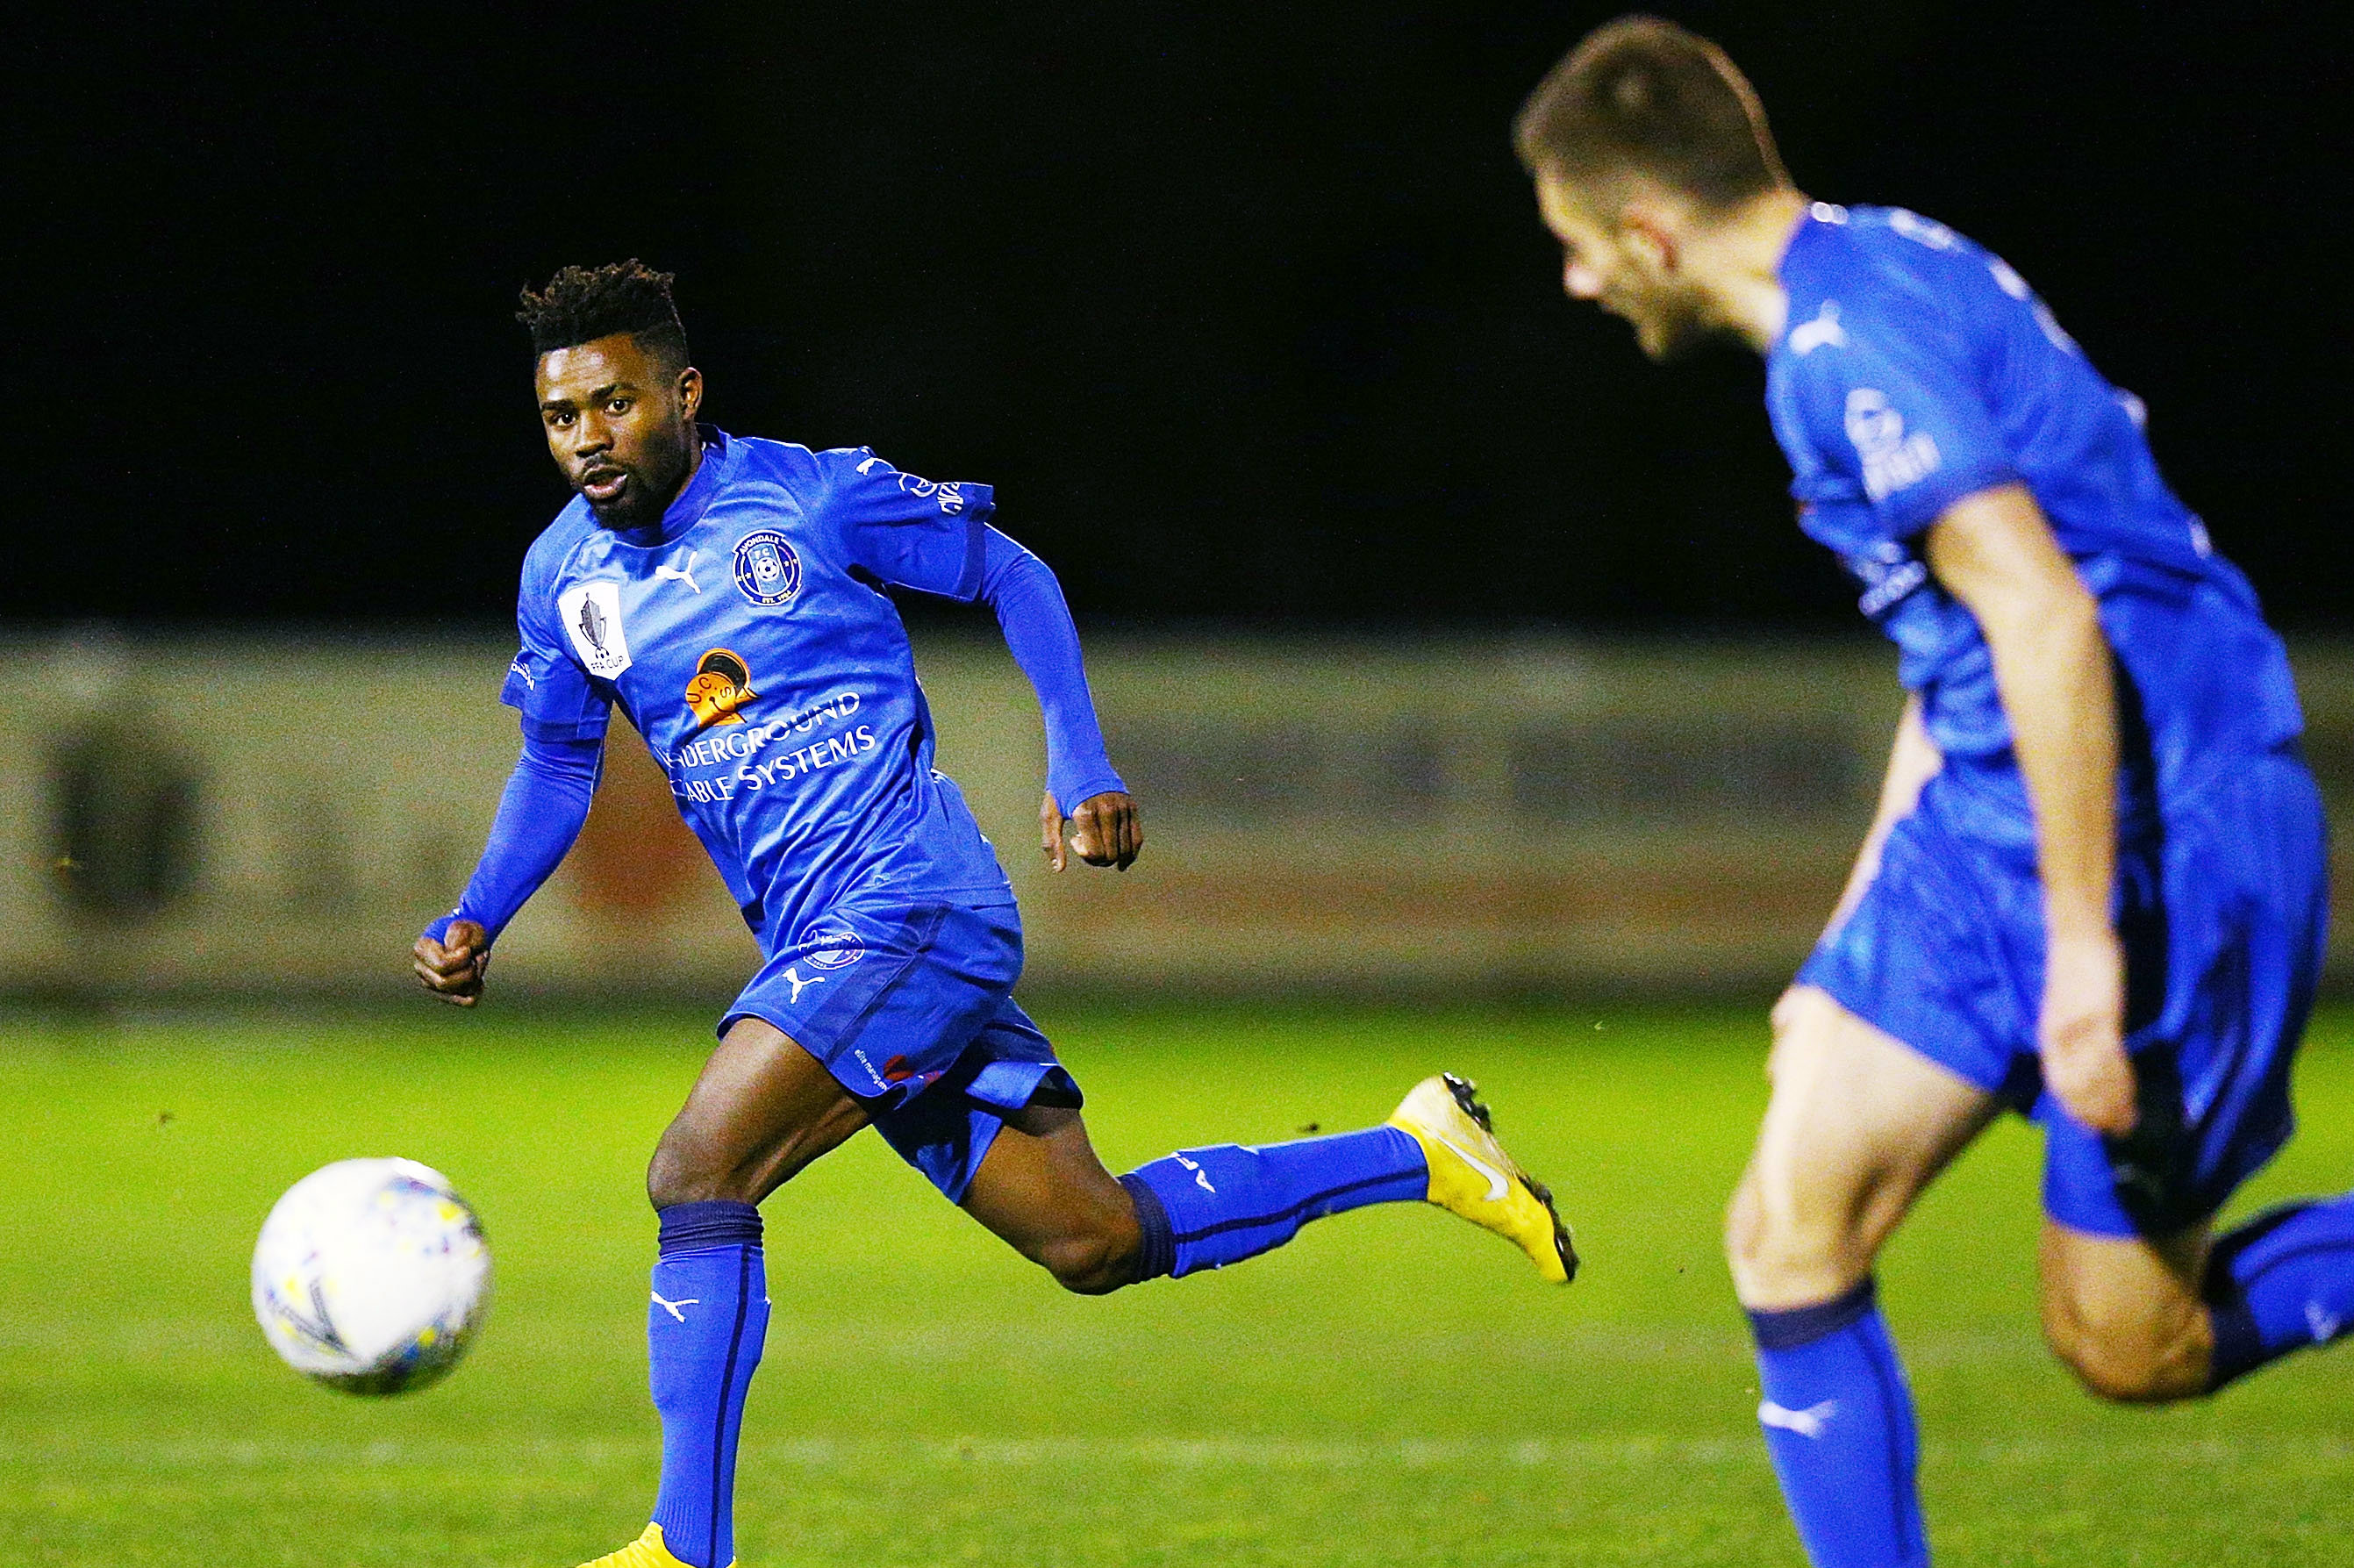 Elvis Kamsoba in action in the FFA Cup.